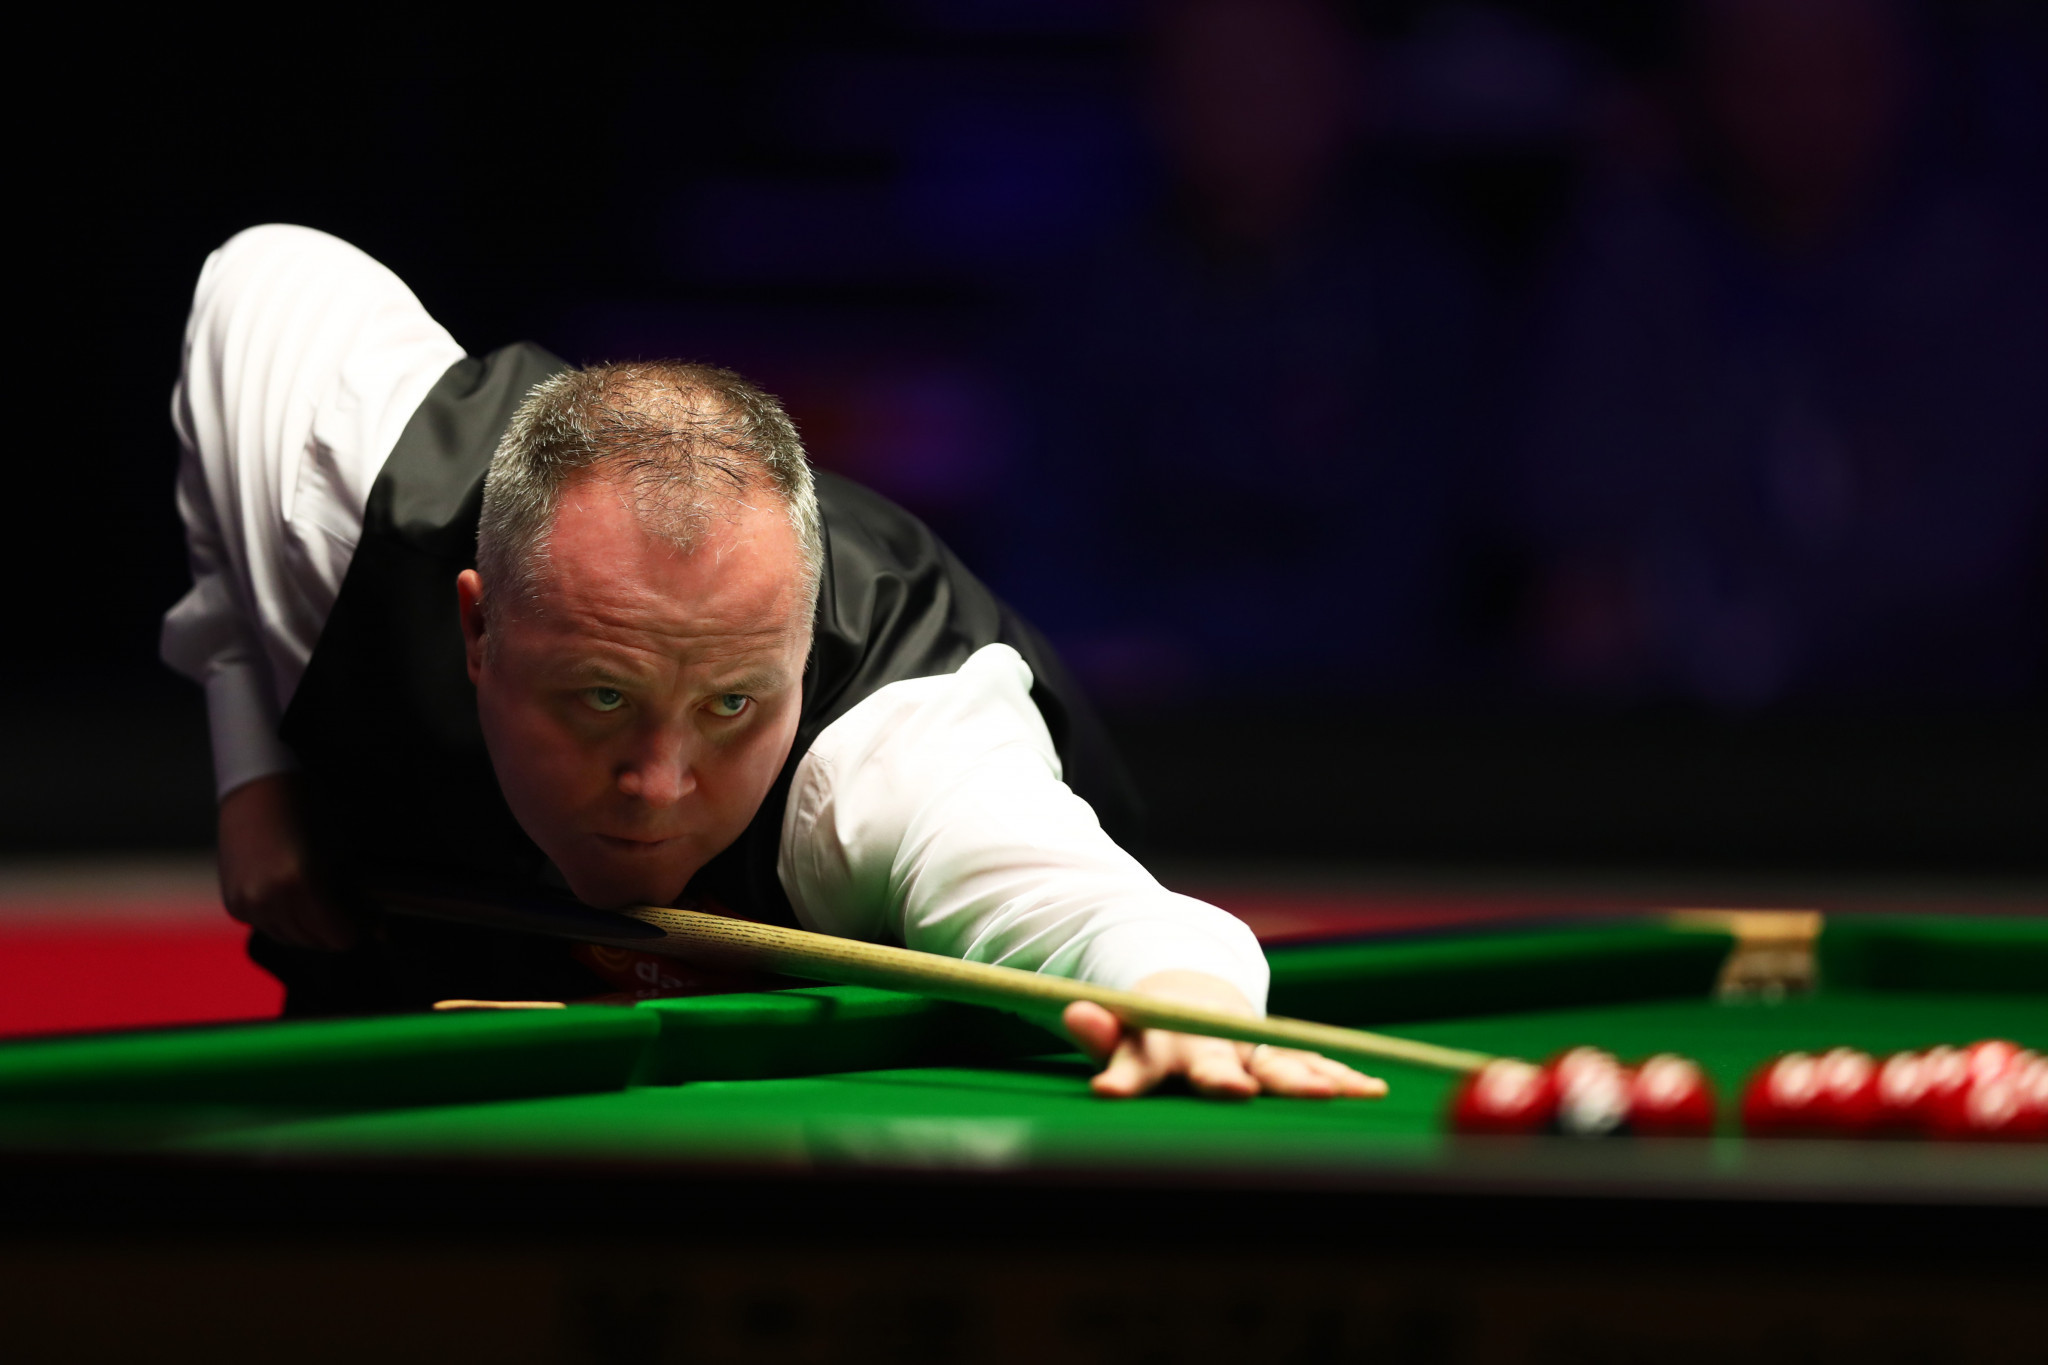 Four-time champion John Higgins is through to the second round ©Getty Images